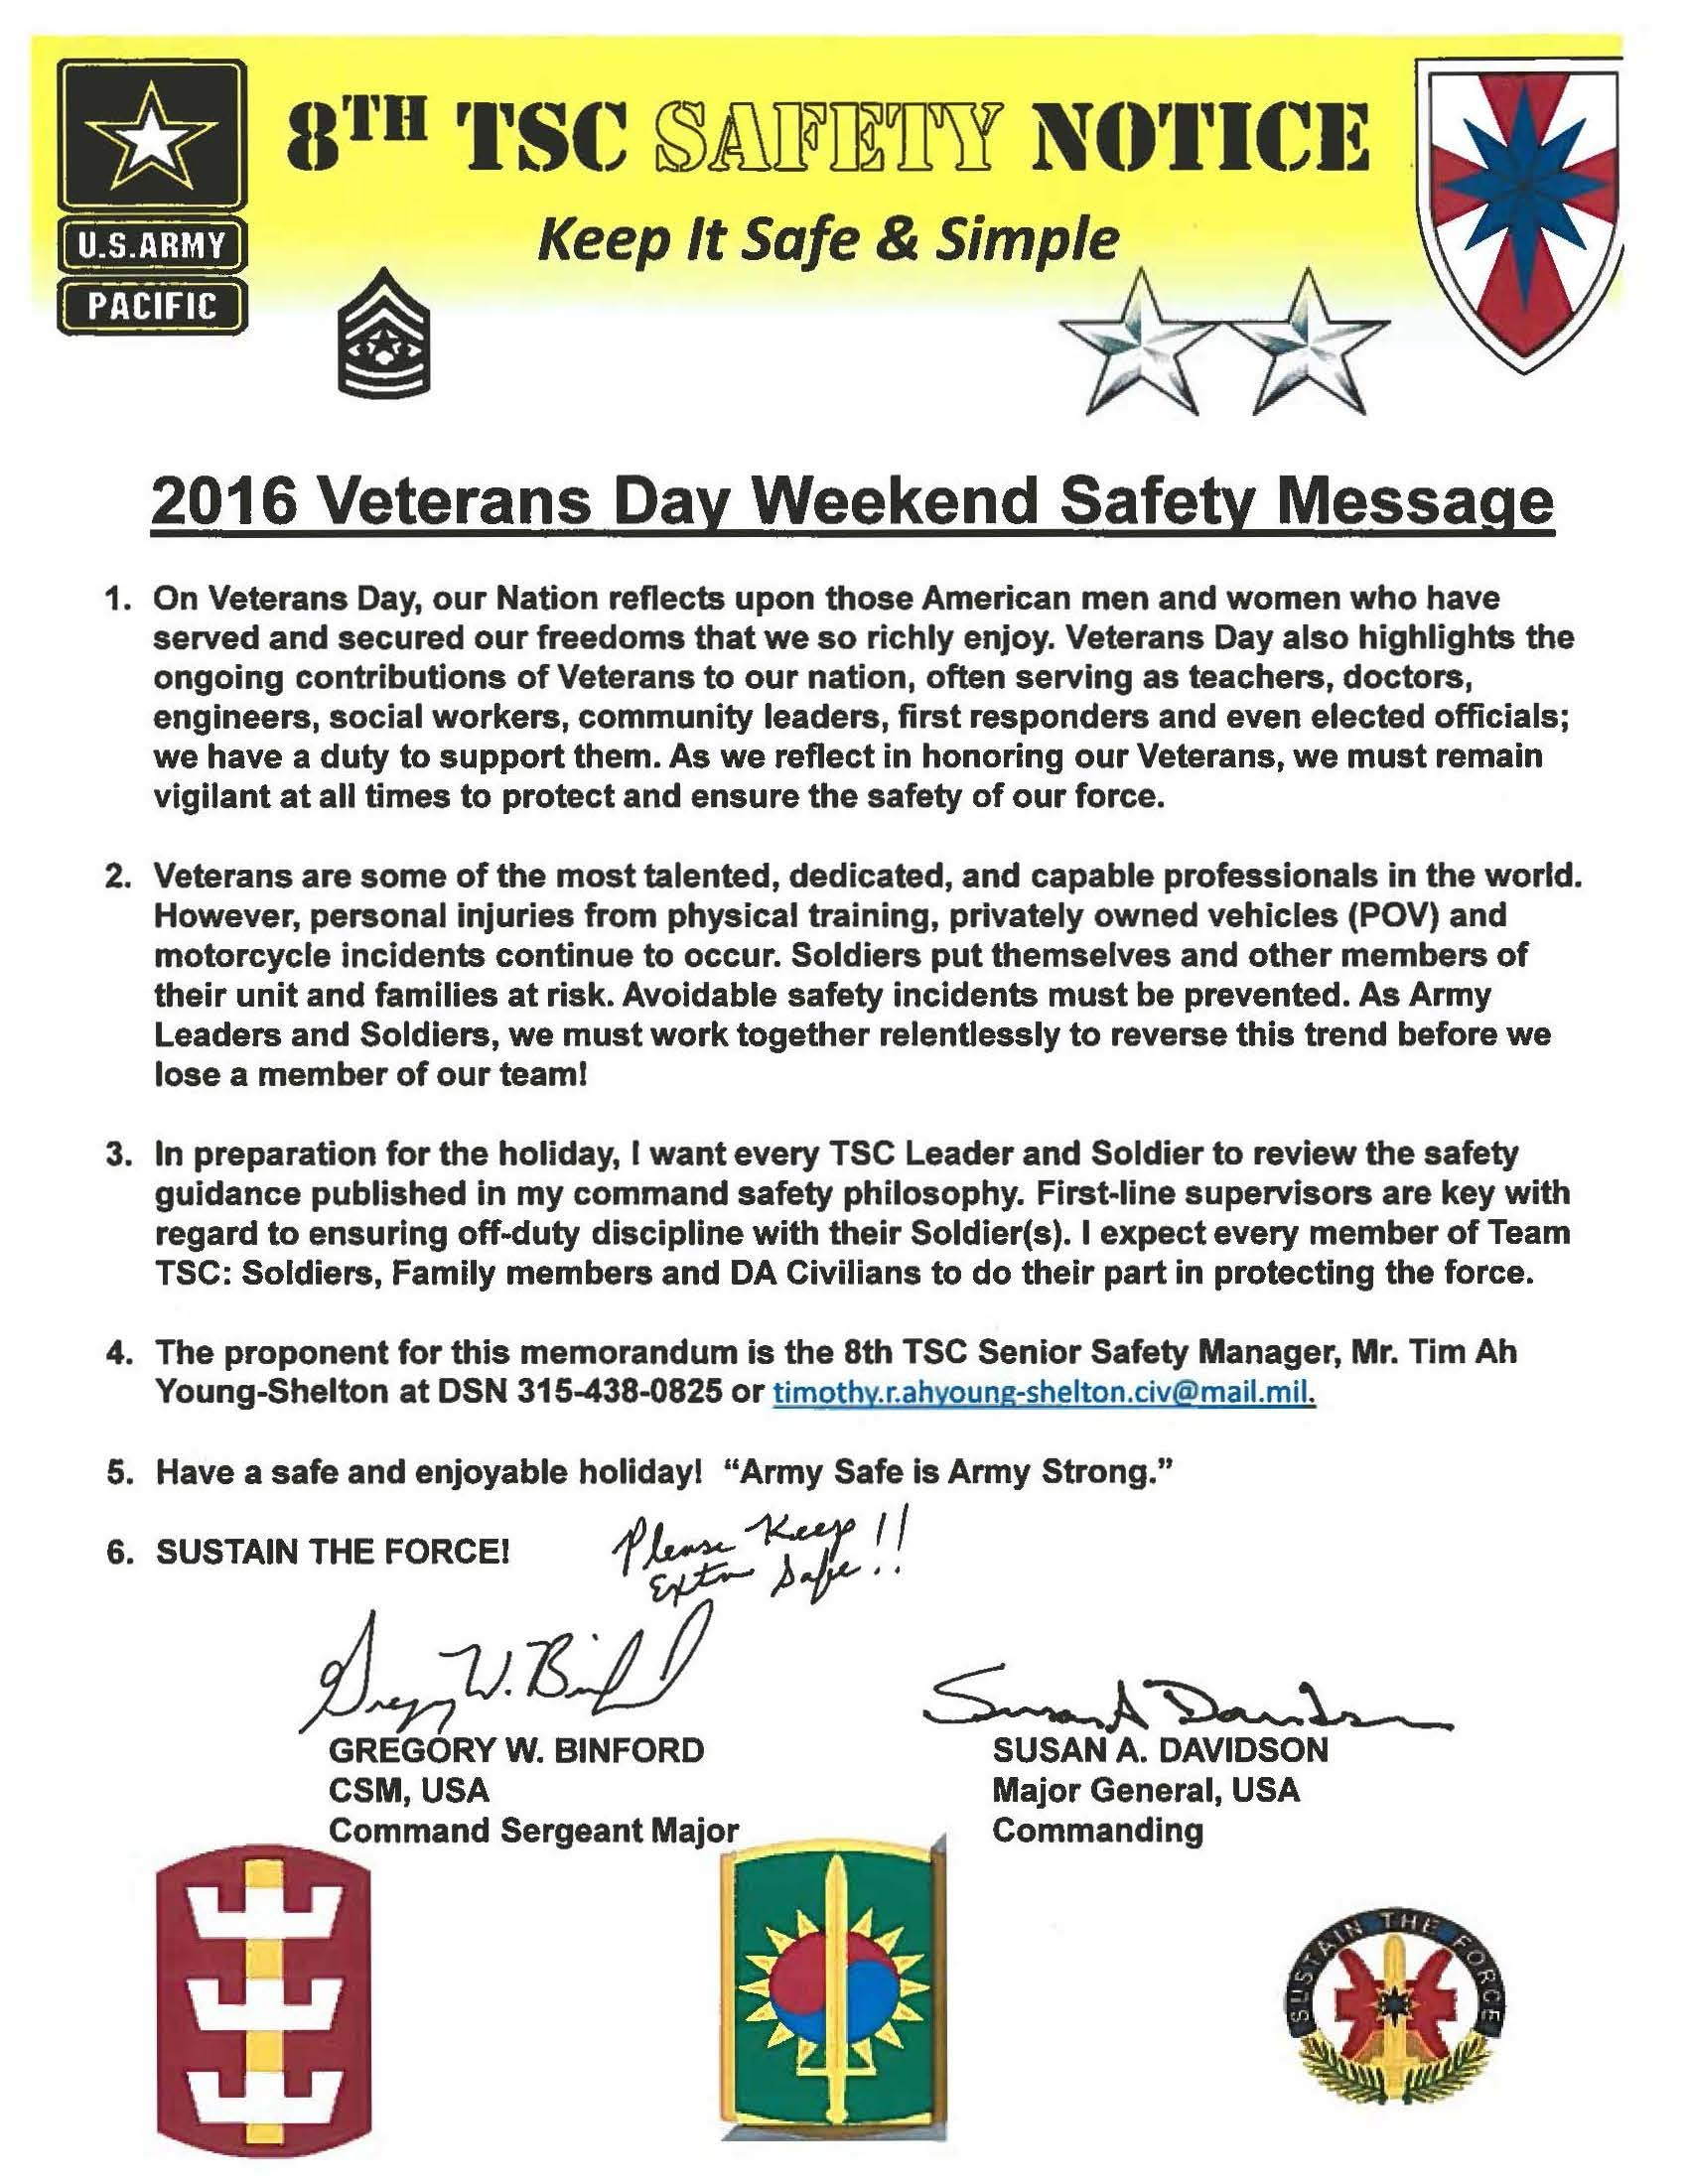 2016 Veterans Day Weekend Safety Message | Article | The ...